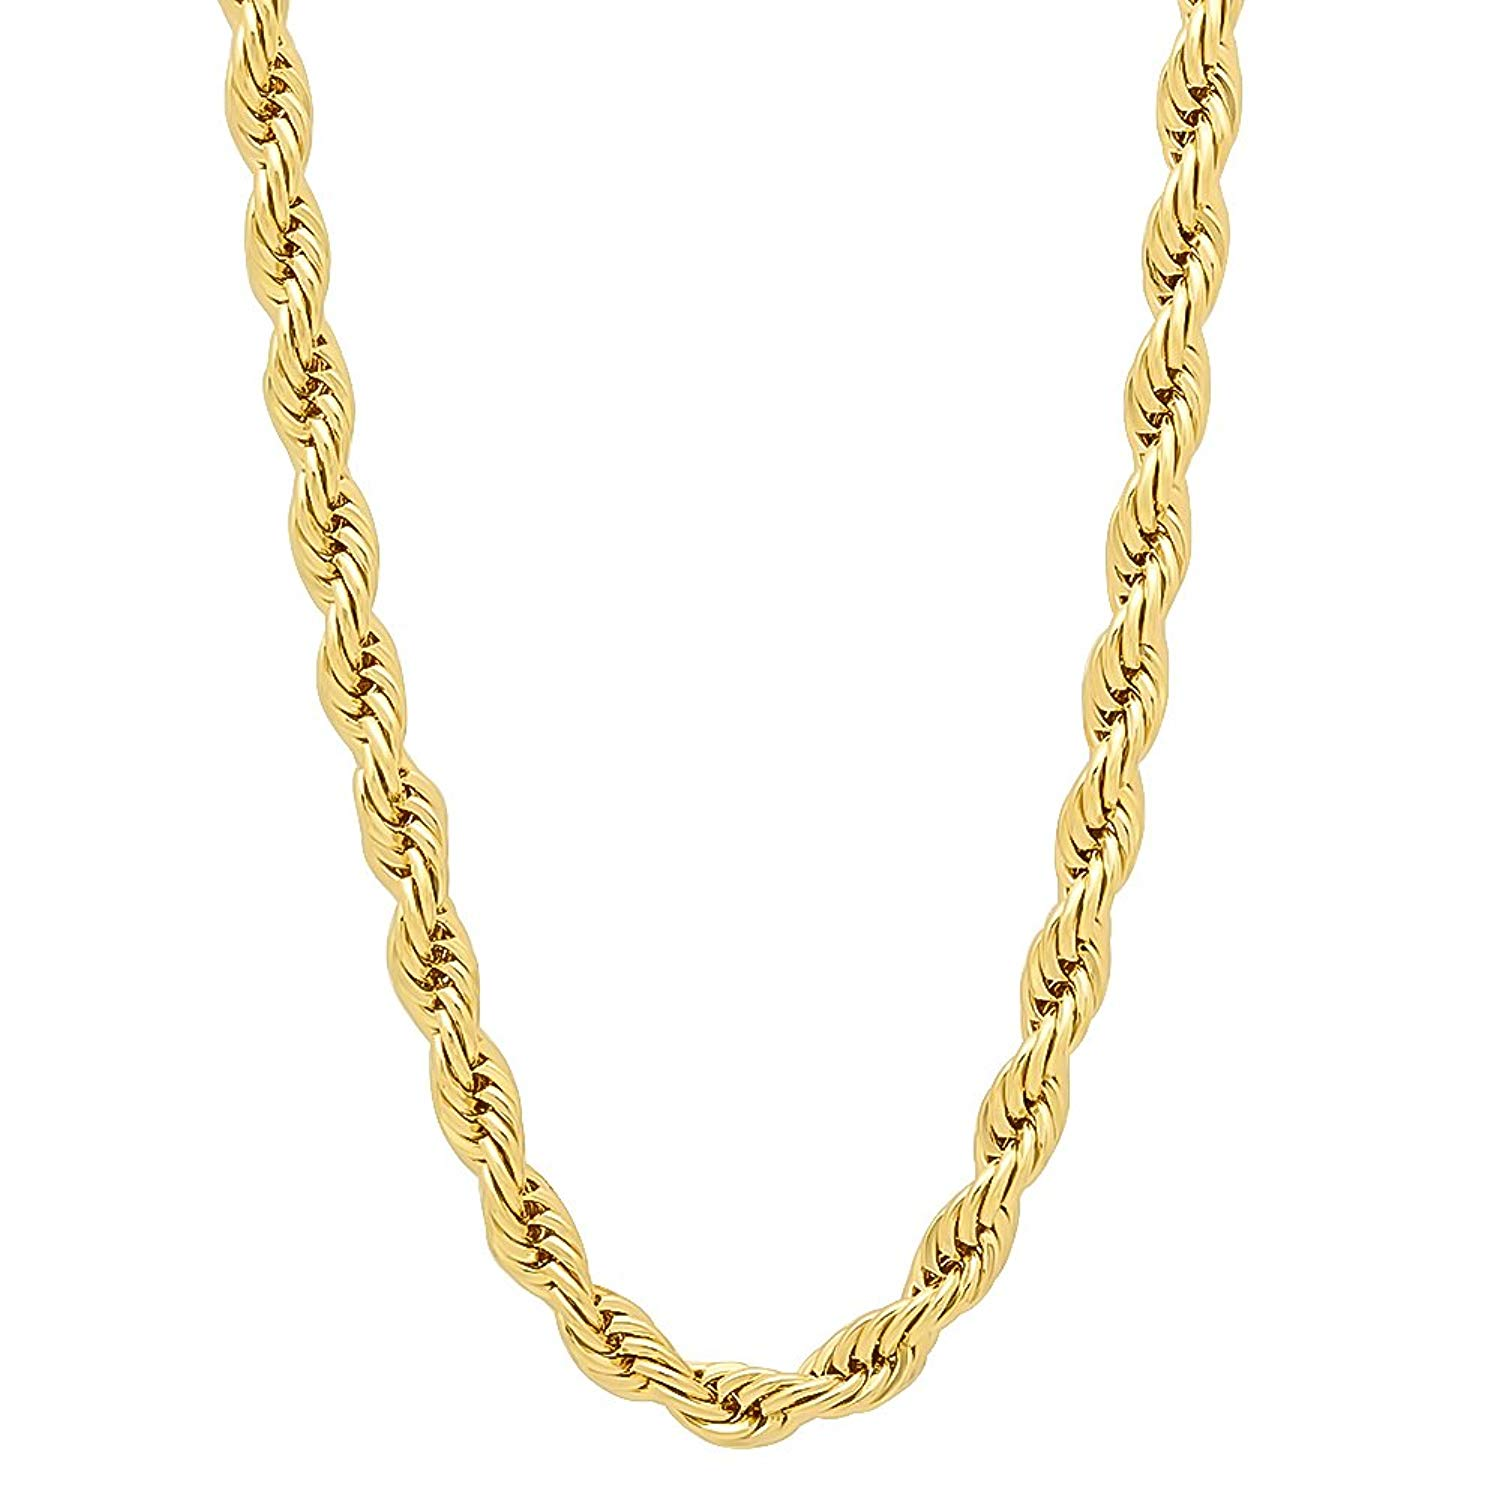 24aec65c6b310 Cheap Bling Gold Chain, find Bling Gold Chain deals on line at ...